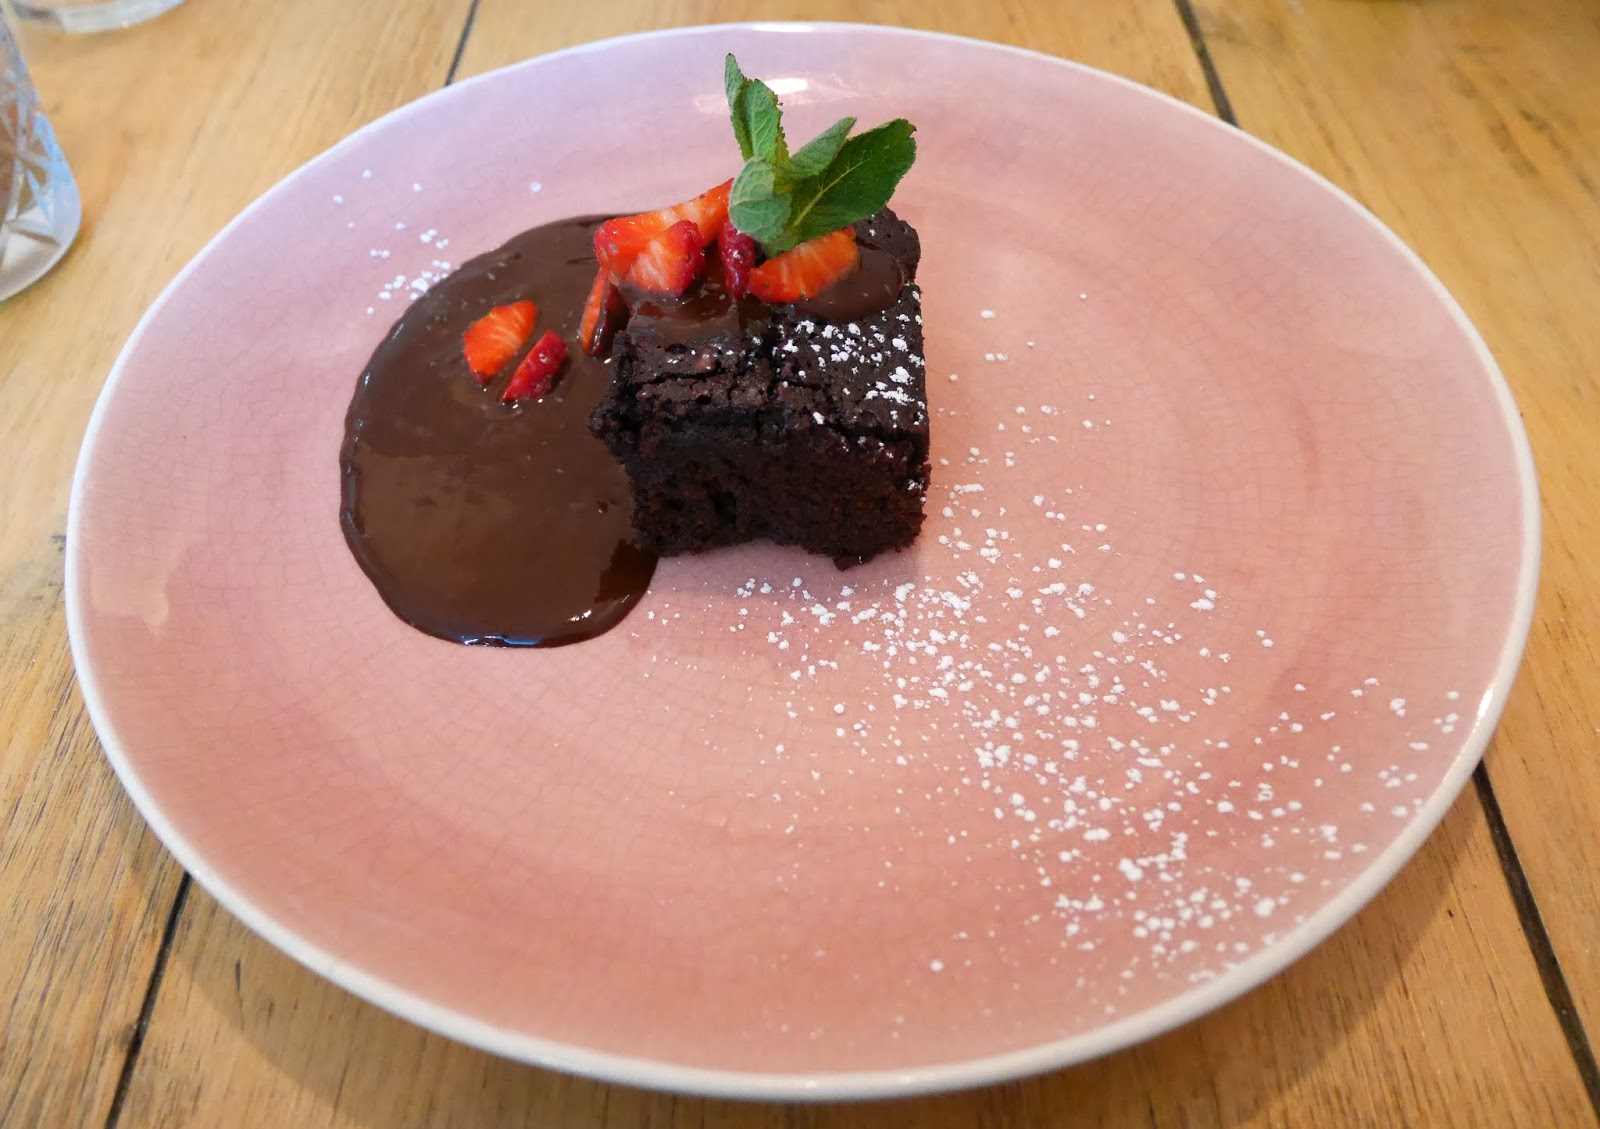 Chocolate brownie for dessert at The Skinny Kitchen in Canterbury, Kent